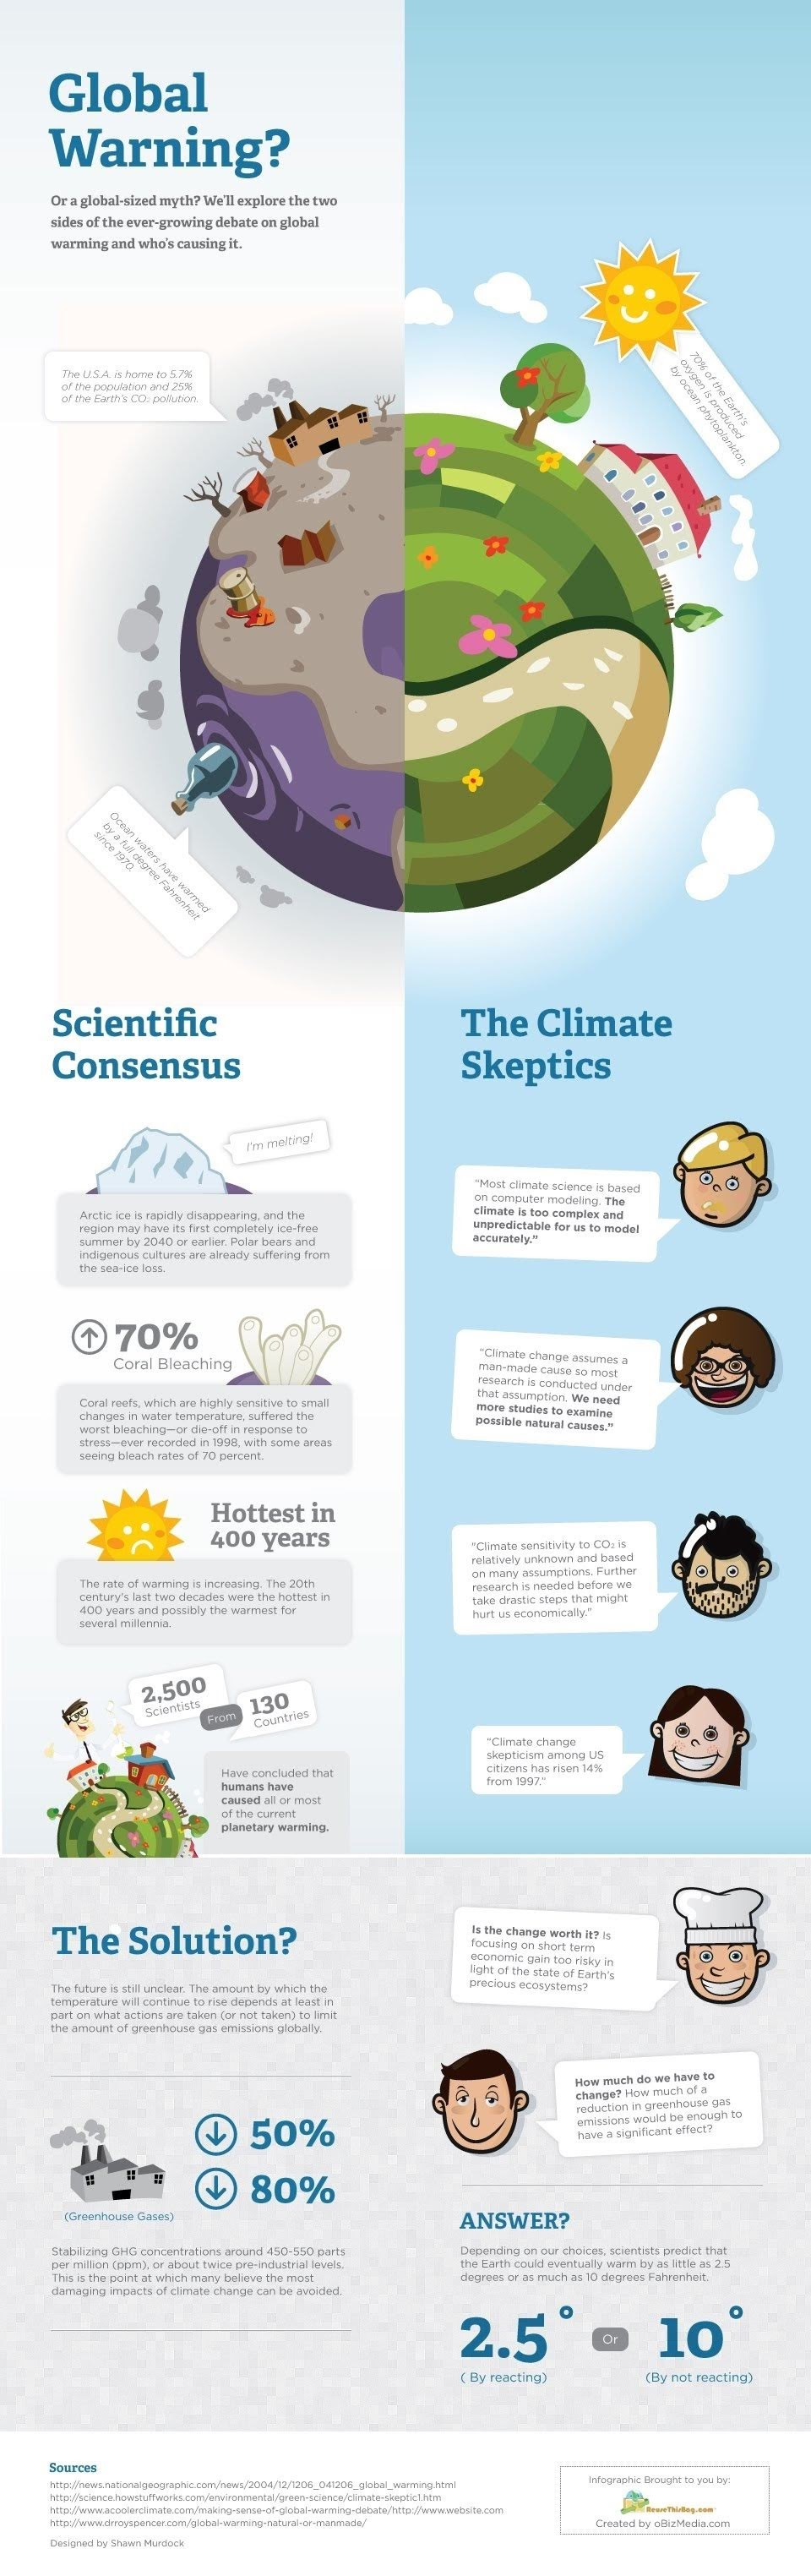 Global warming and who is in charge of it #infographic